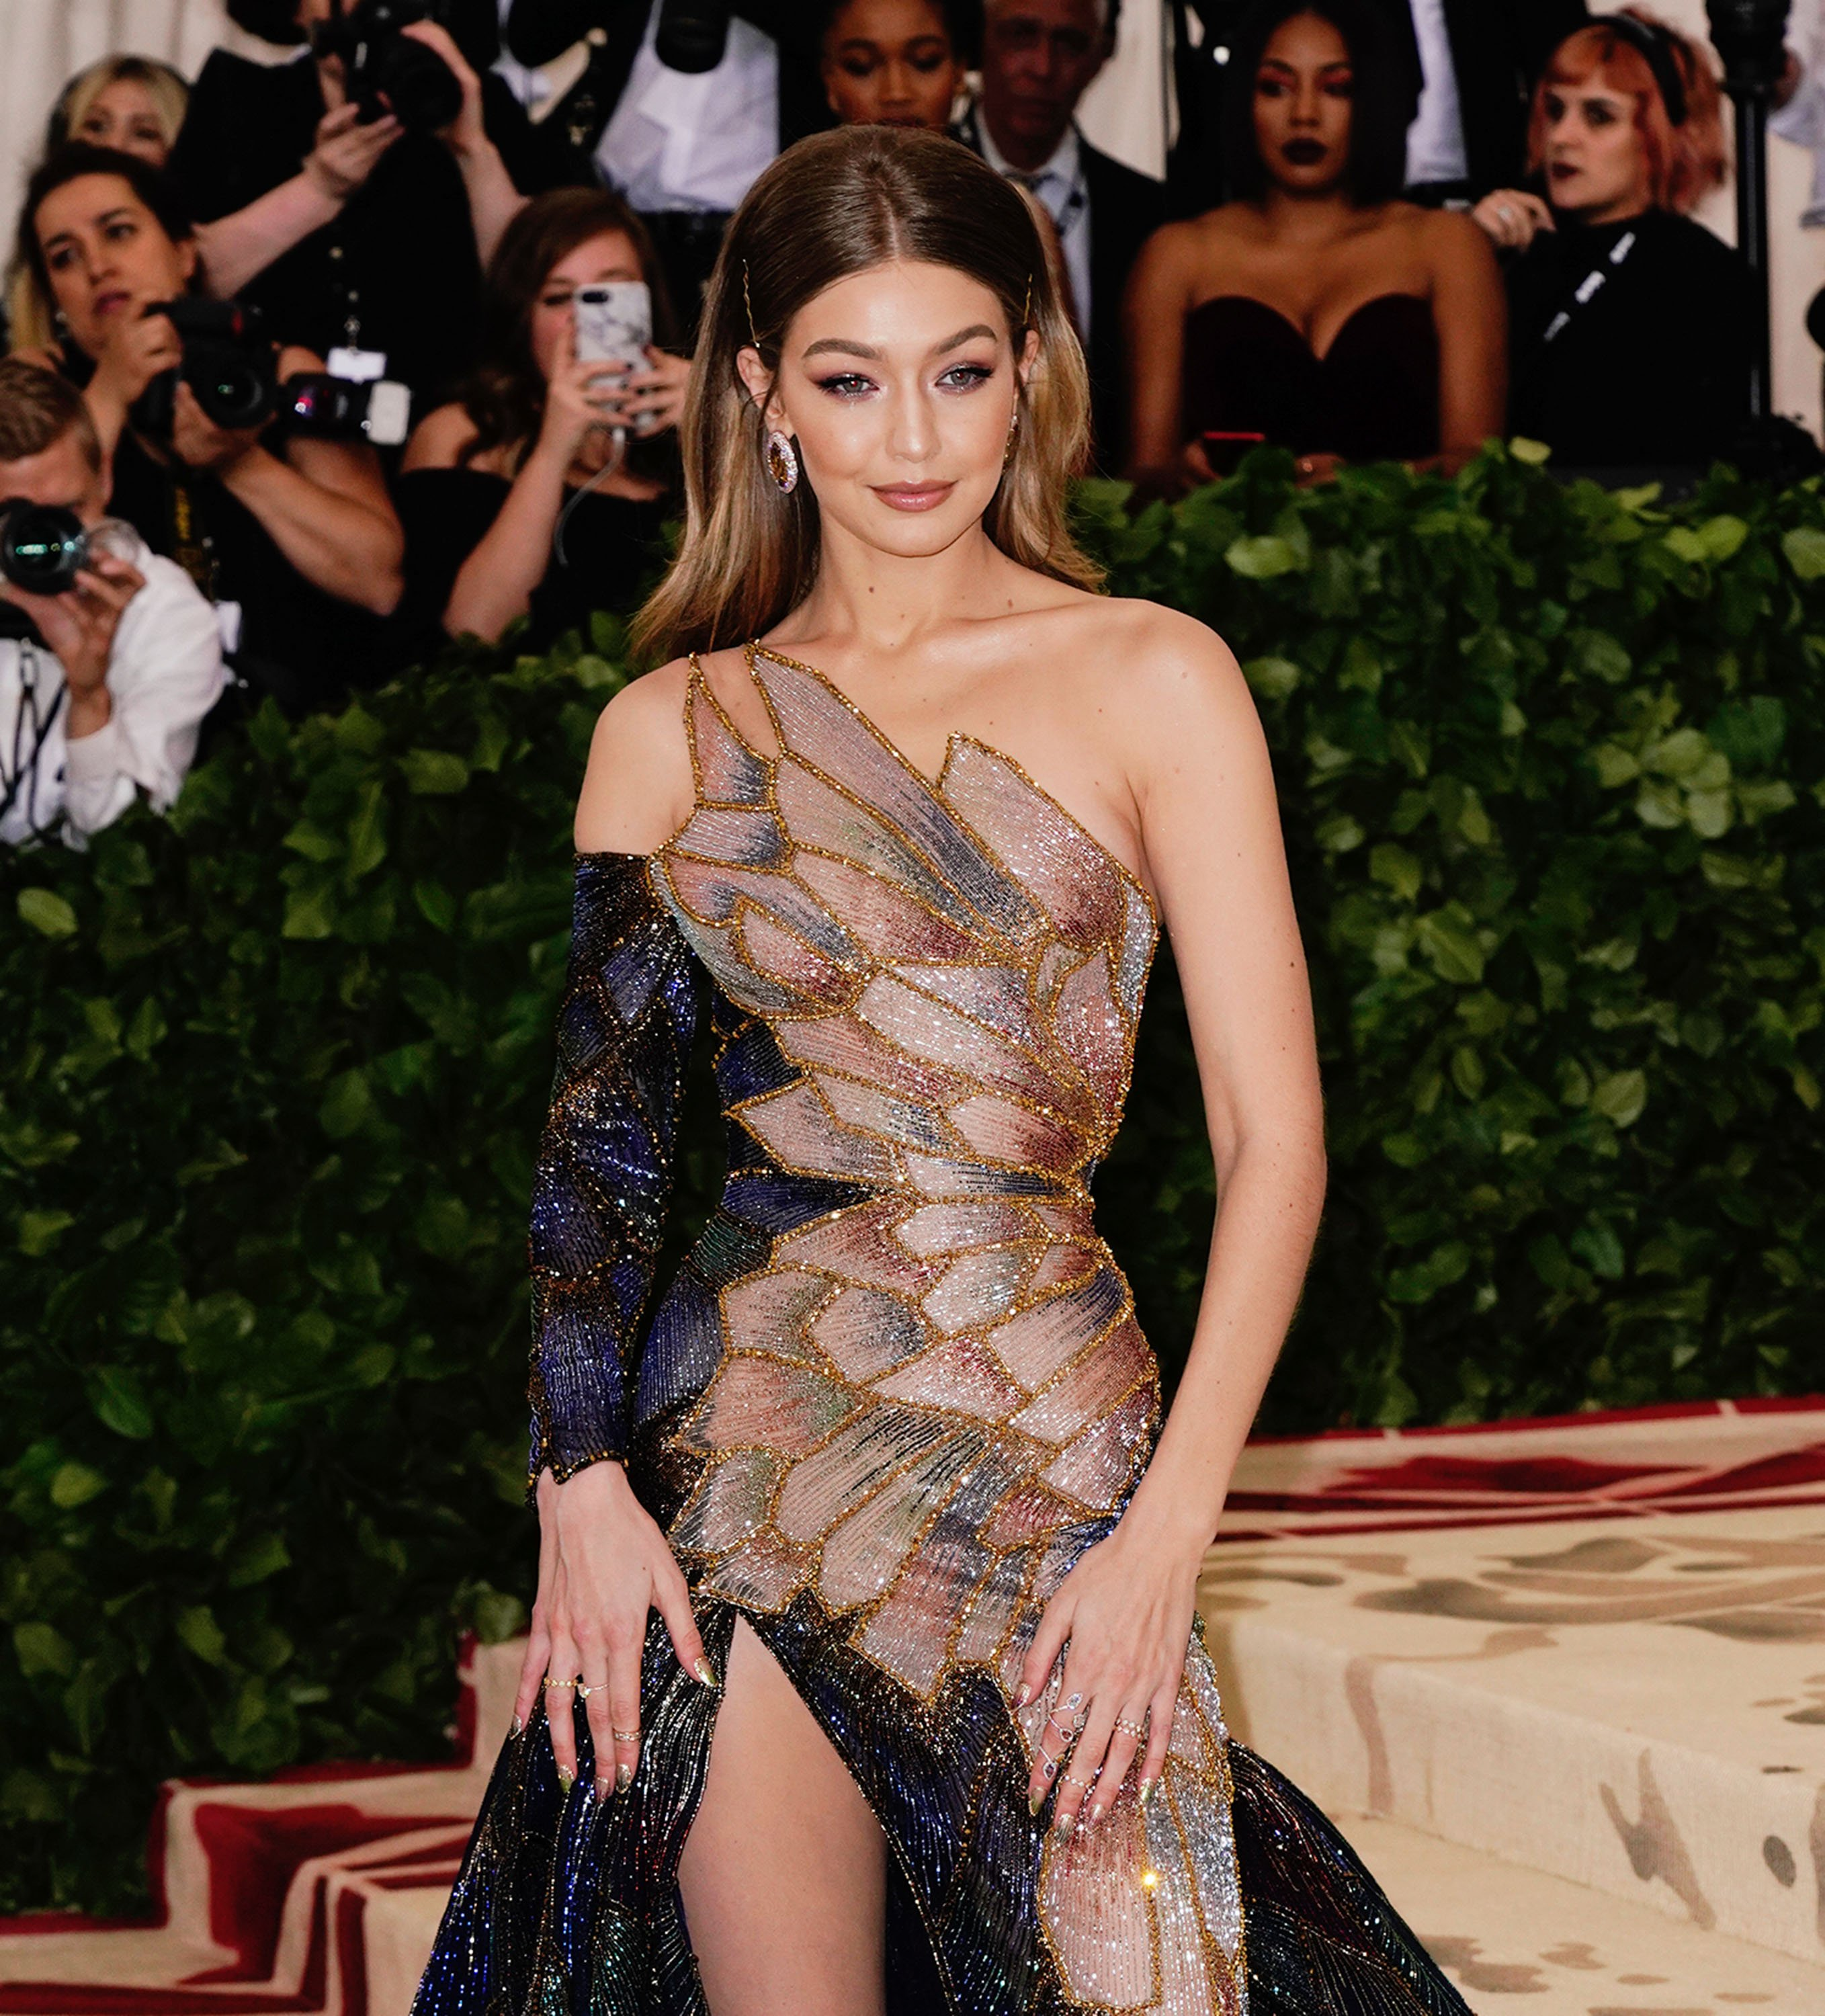 Gigi Hadid pictured at the Heavenly Bodies: Fashion & The Catholic Imagination Costume Institute Gala at Metropolitan Museum of Art, 2018, New York City. | Photo: Getty Images